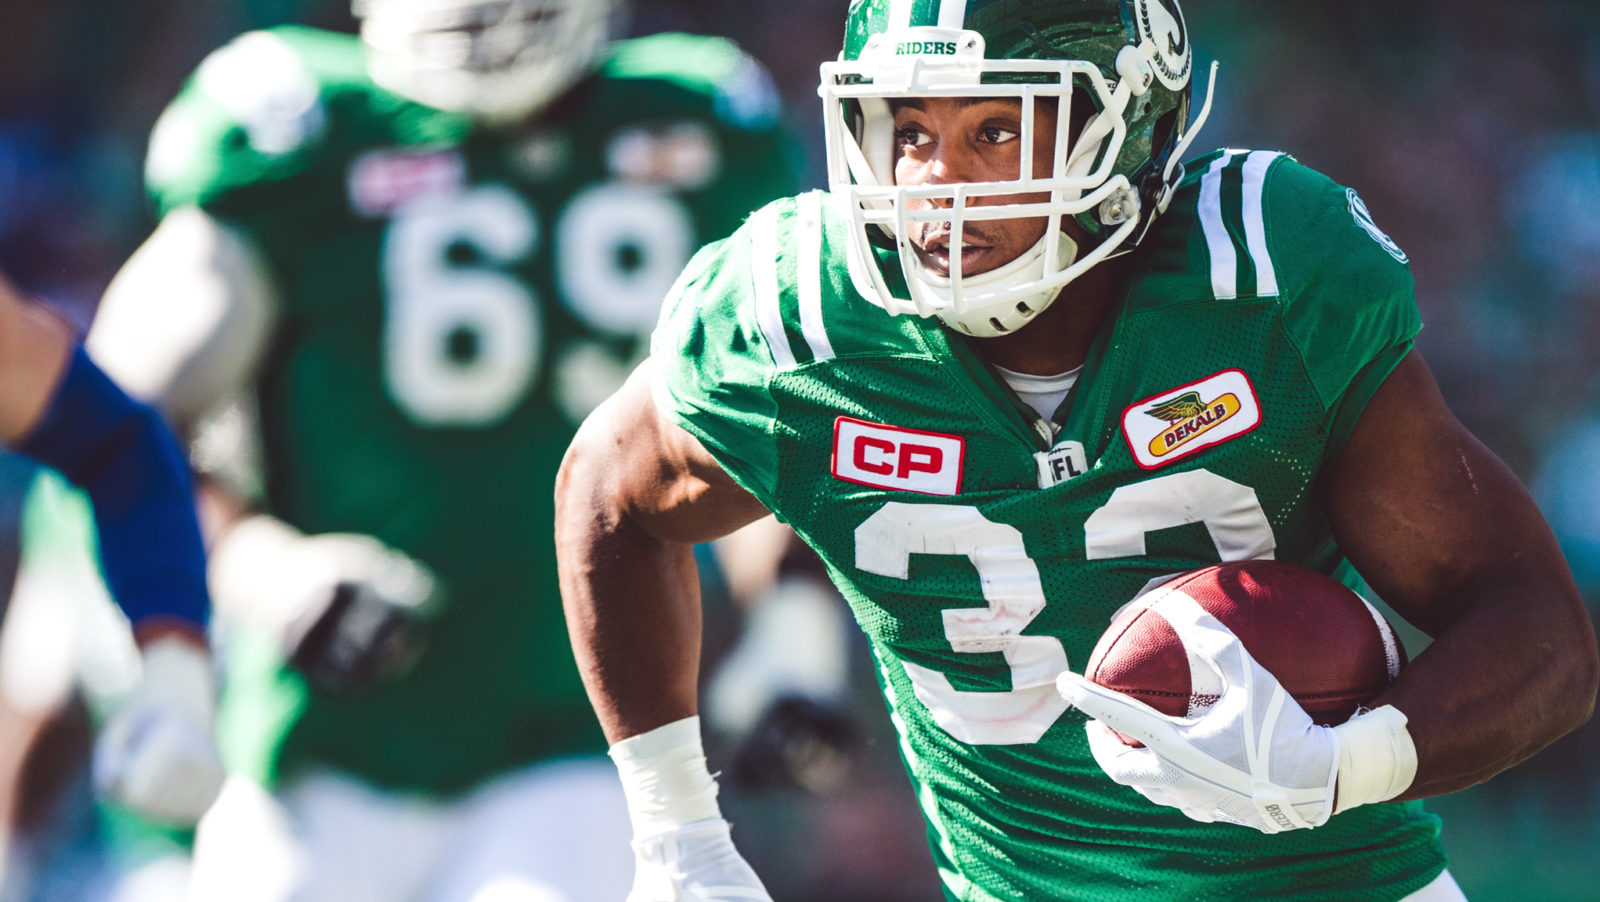 Injuries sideline Marshall, Demski in win over Bombers - CFL.ca